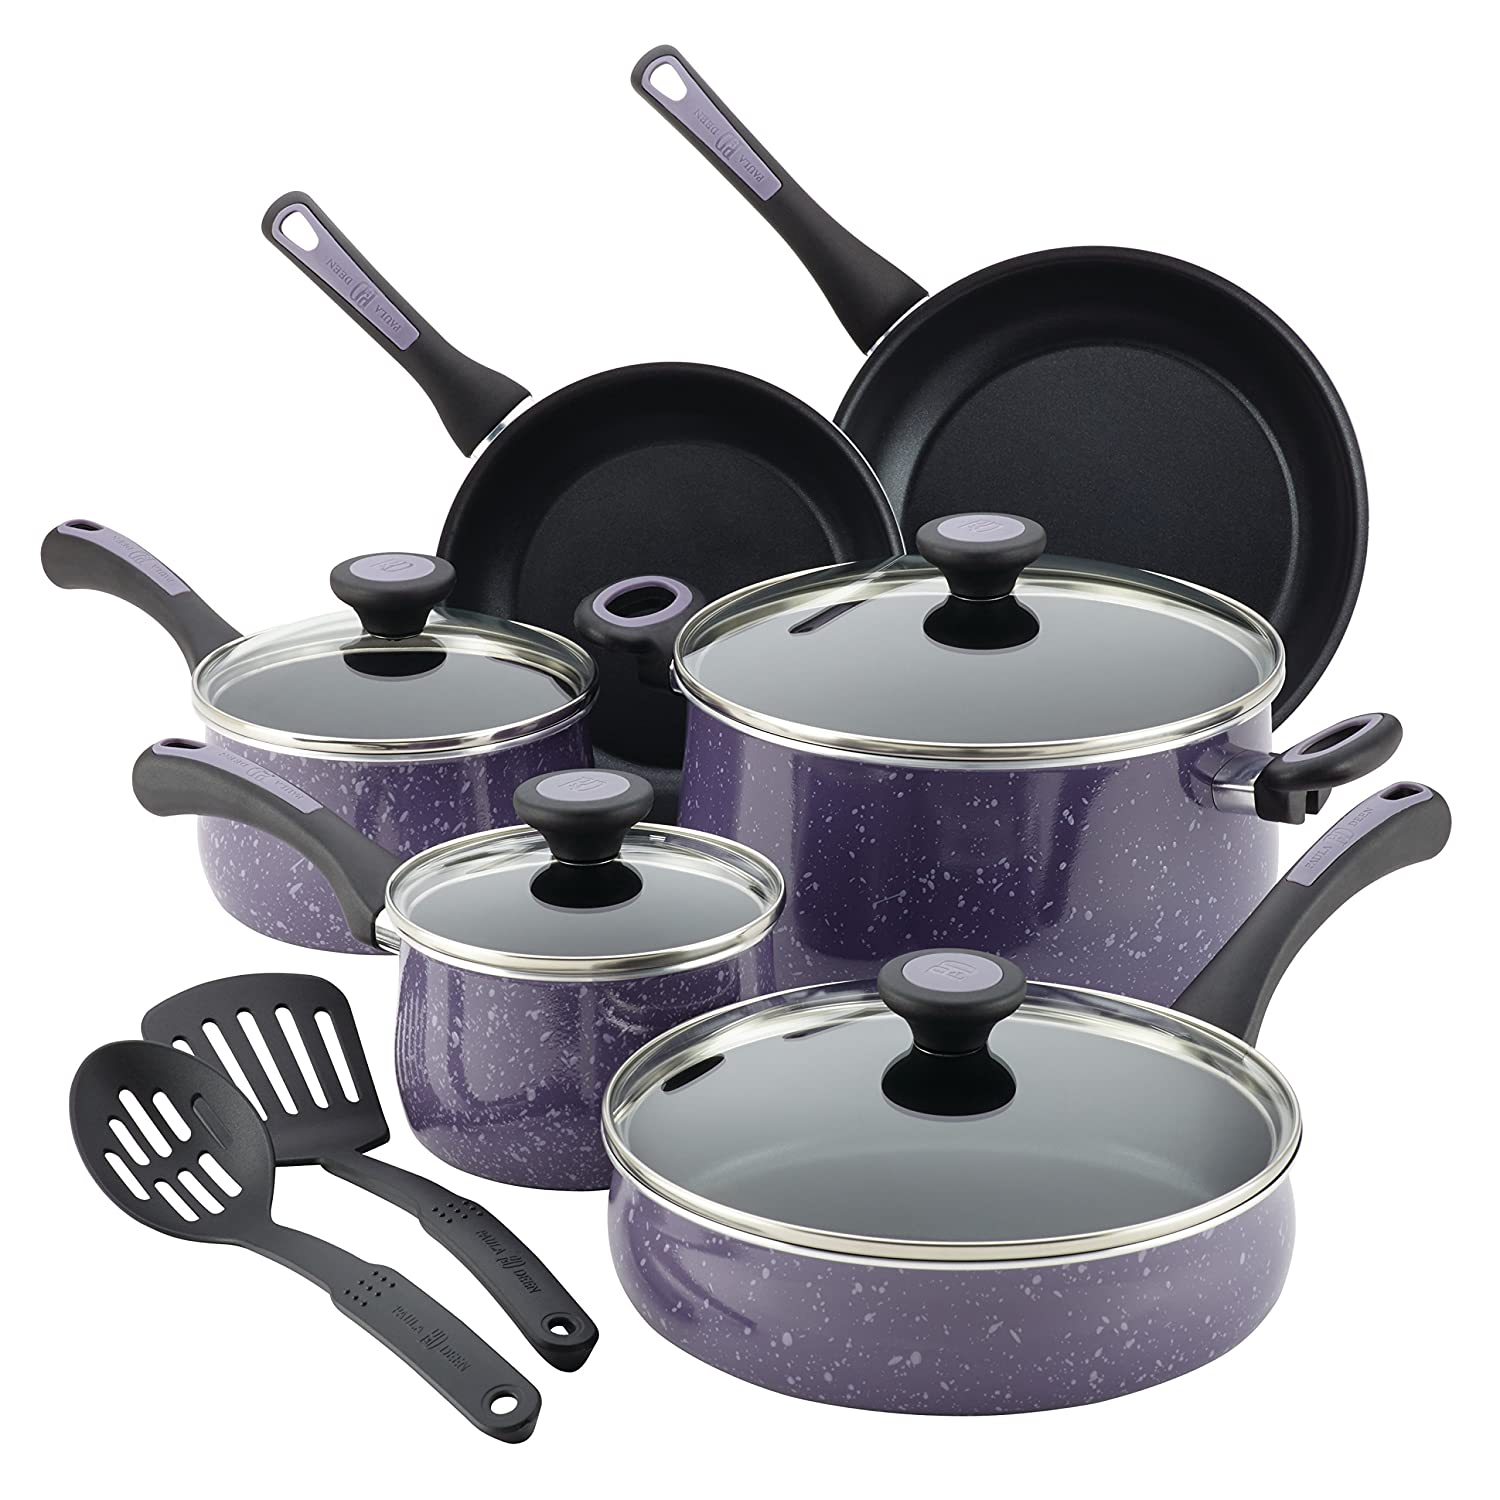 Paula Deen Riverbend Aluminum Nonstick Cookware Set, 12-Piece, Lavender Speckle